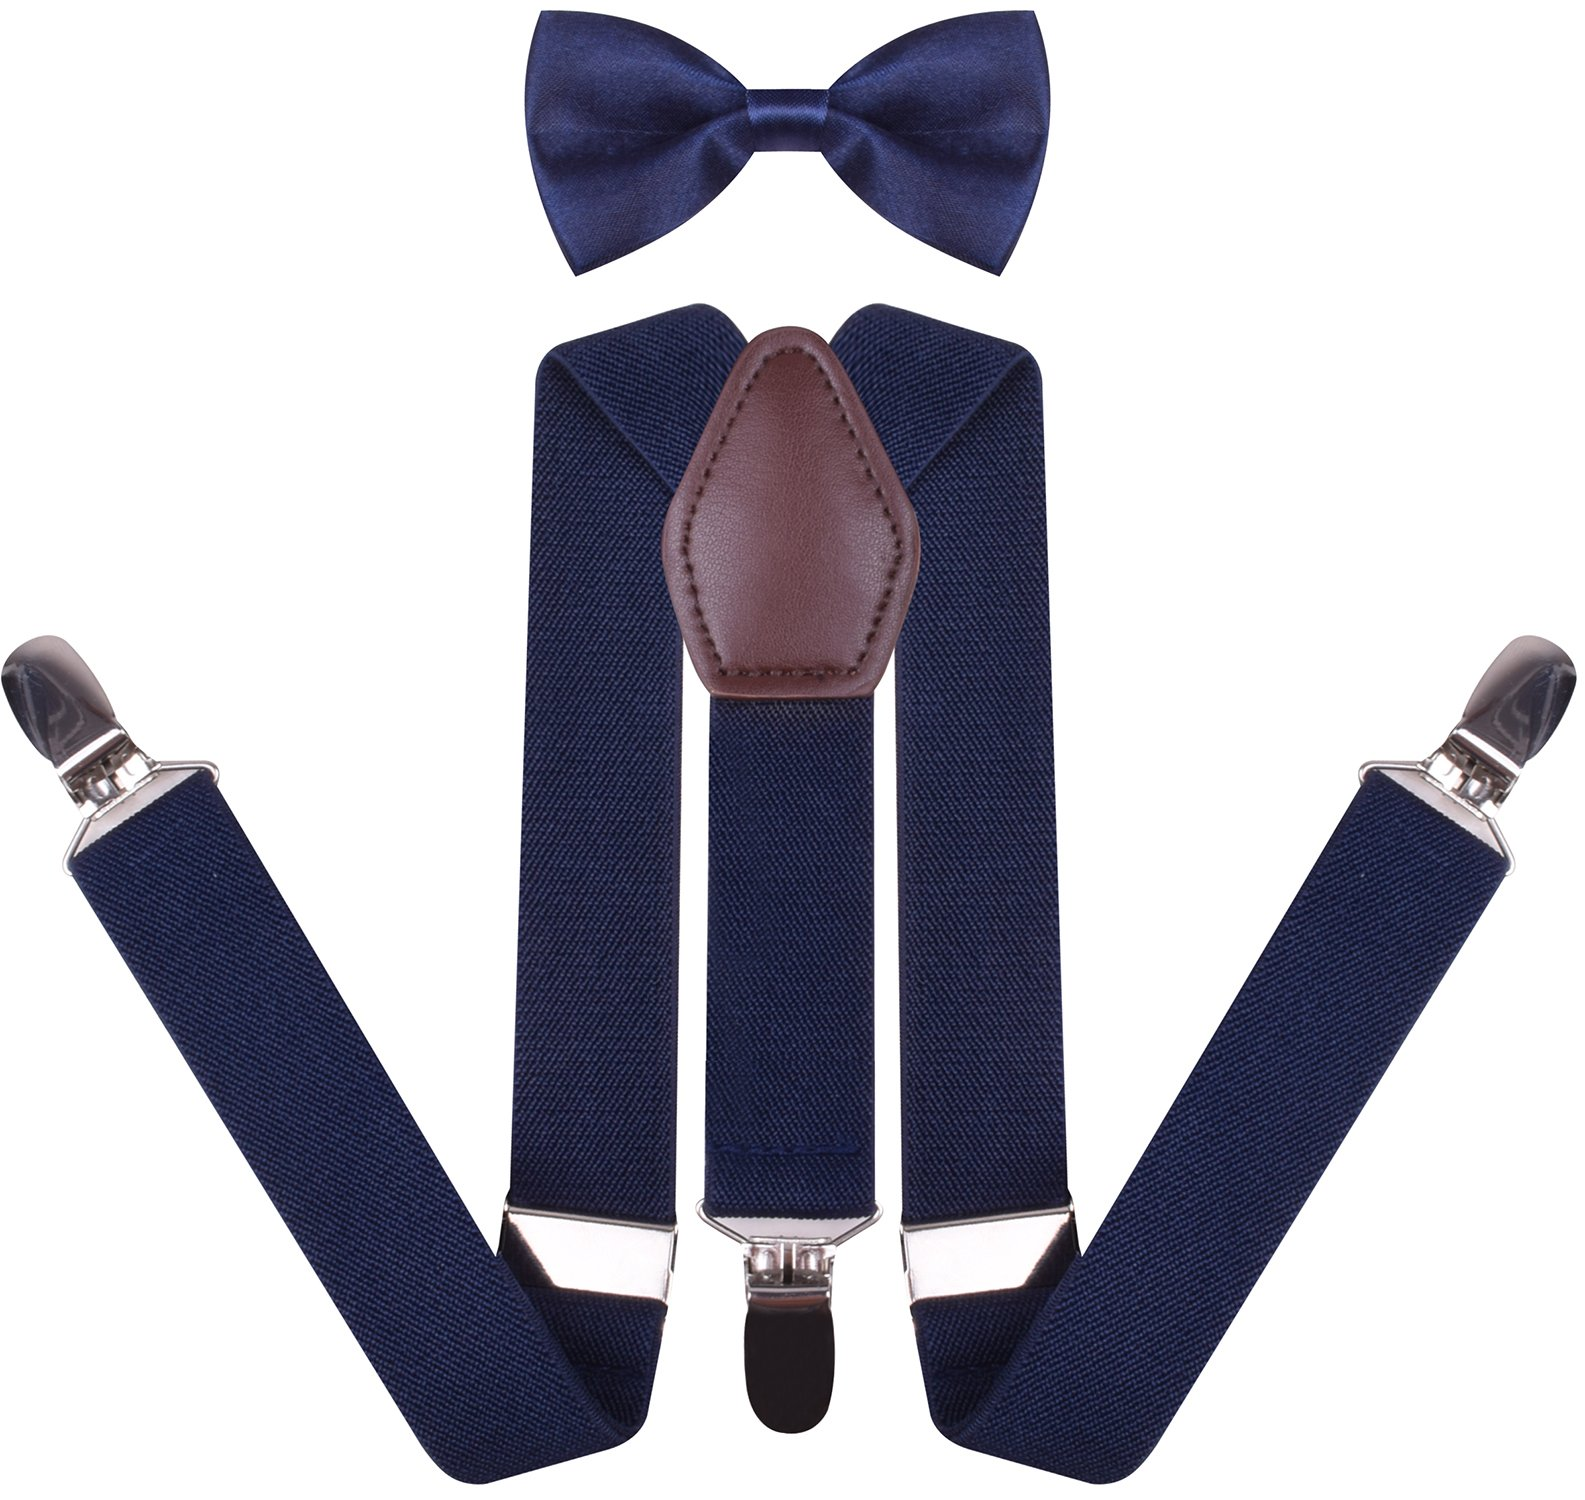 YJDS Boys' Leather Suspenders and Pre Tied Bowtie Set Navy 22 Inches